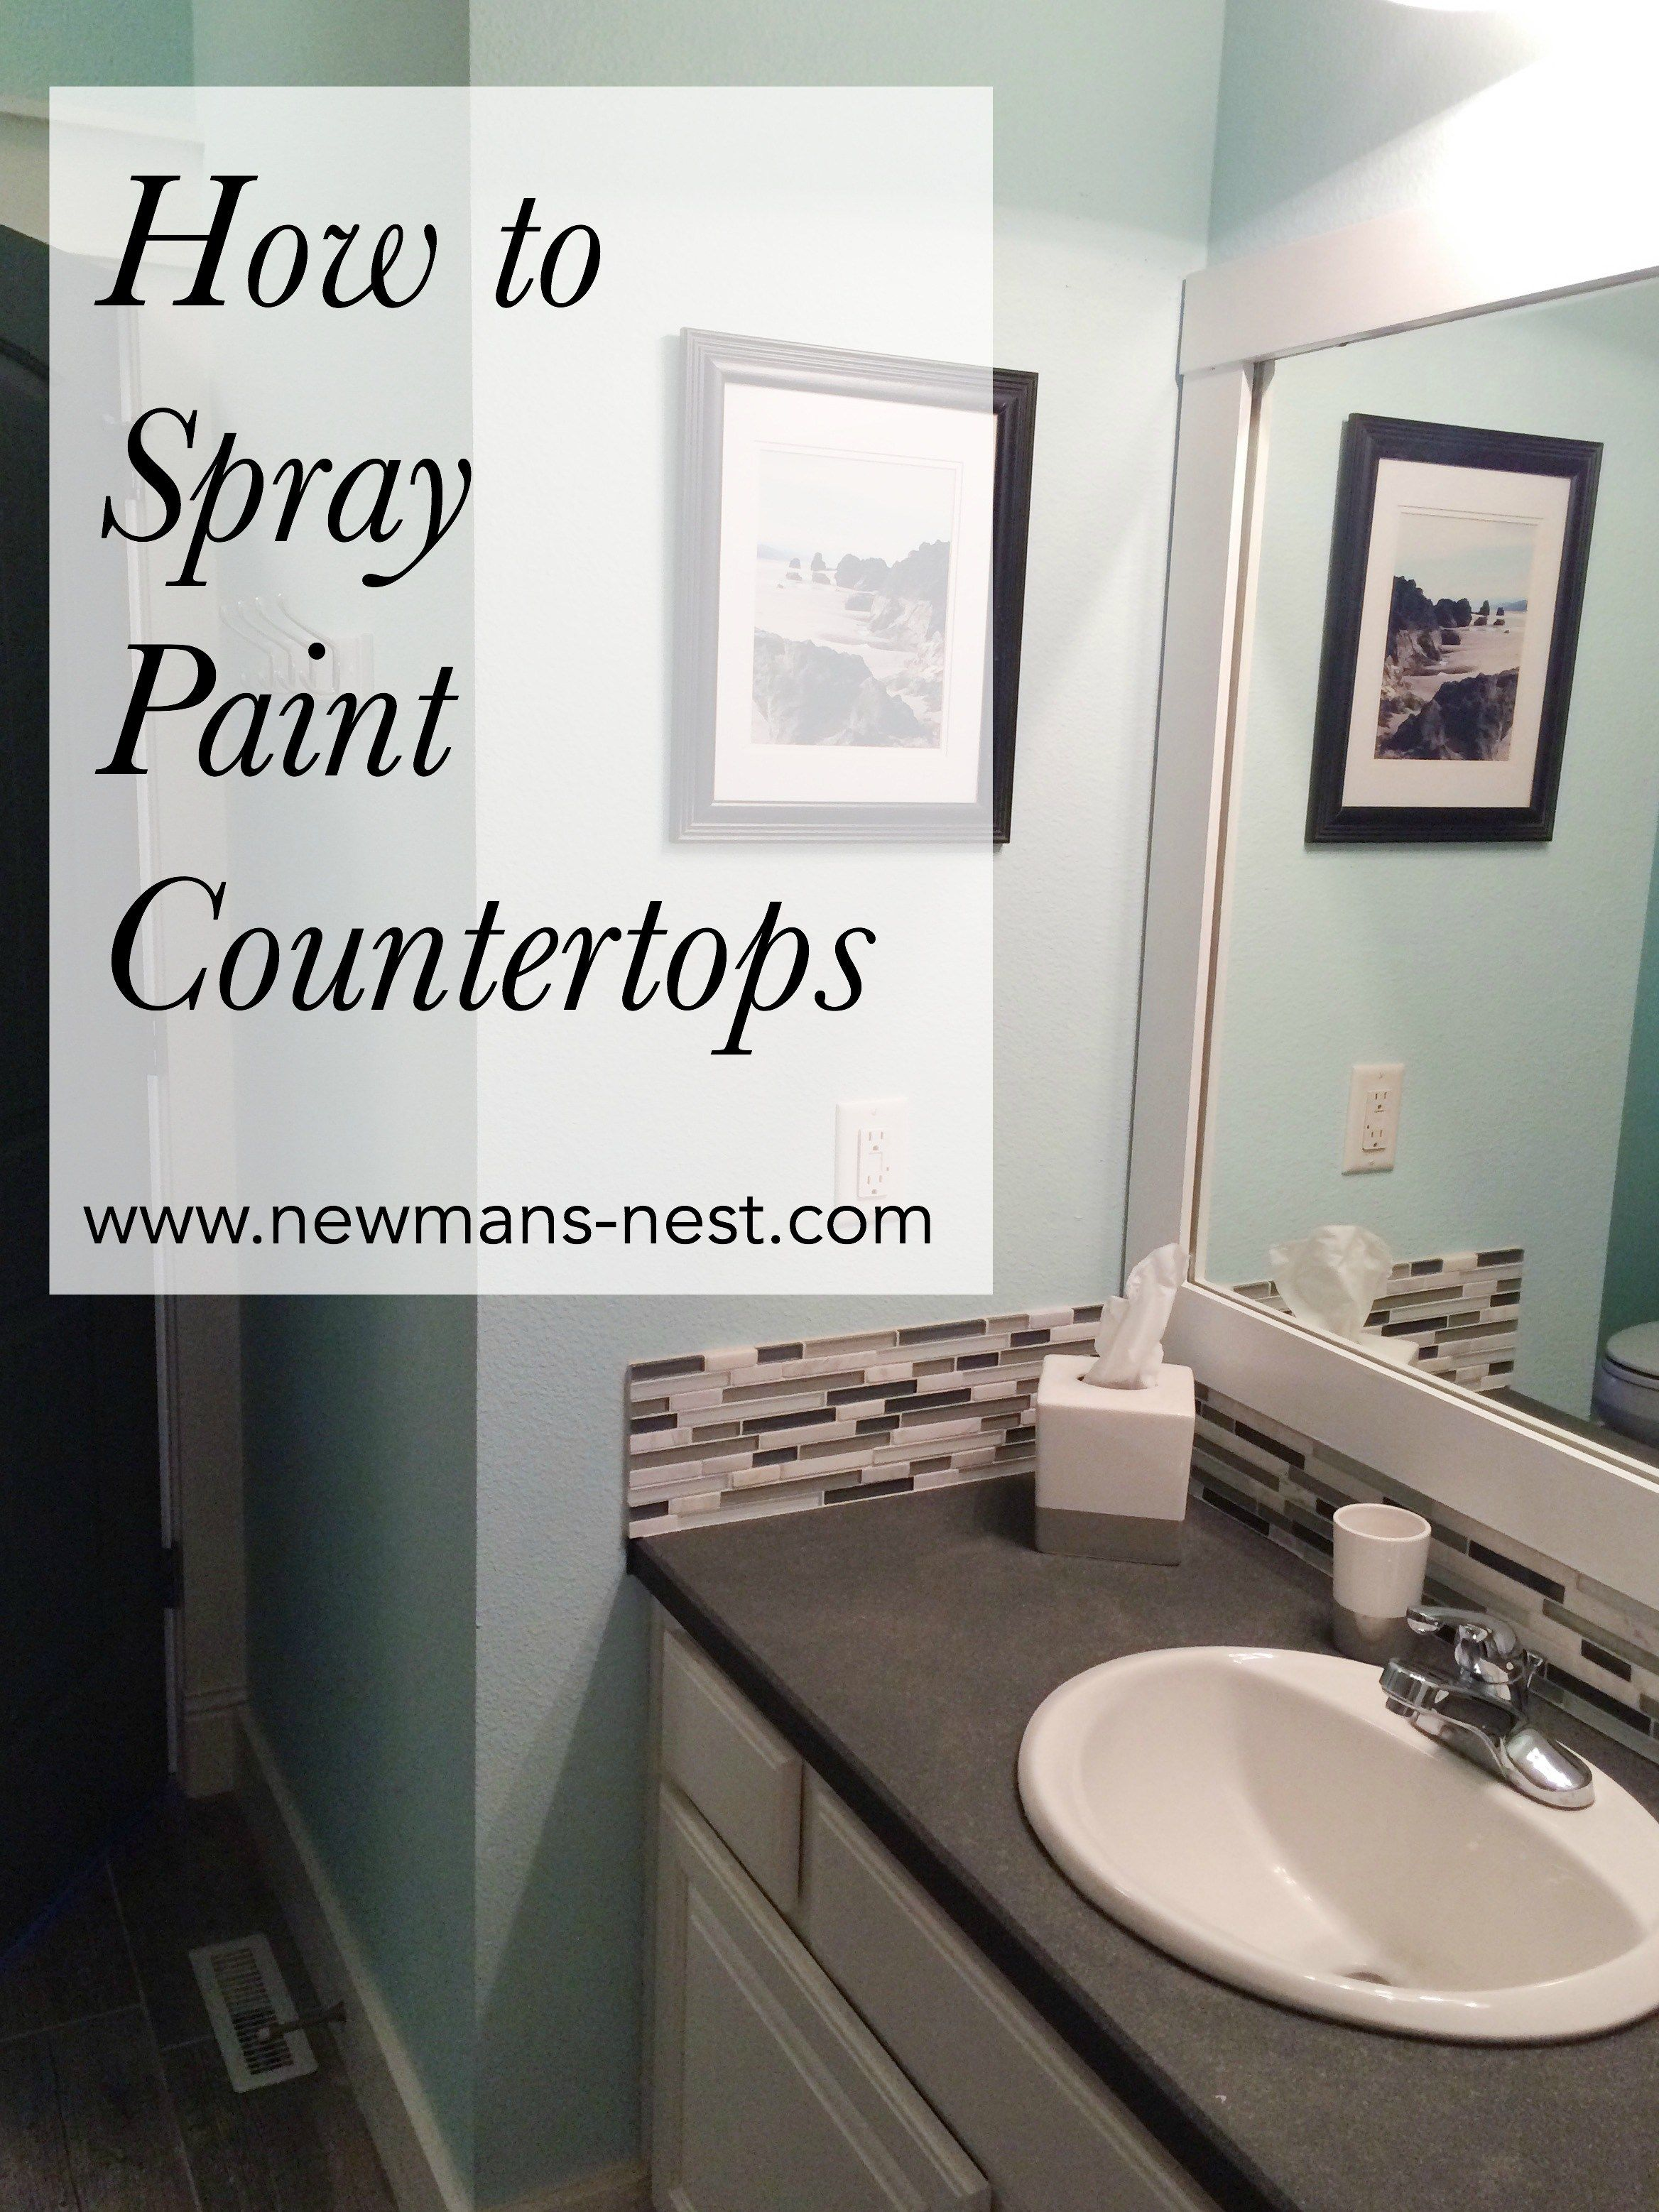 Spray Painted Countertops | diy | Pinterest | Countertop, Change and ...